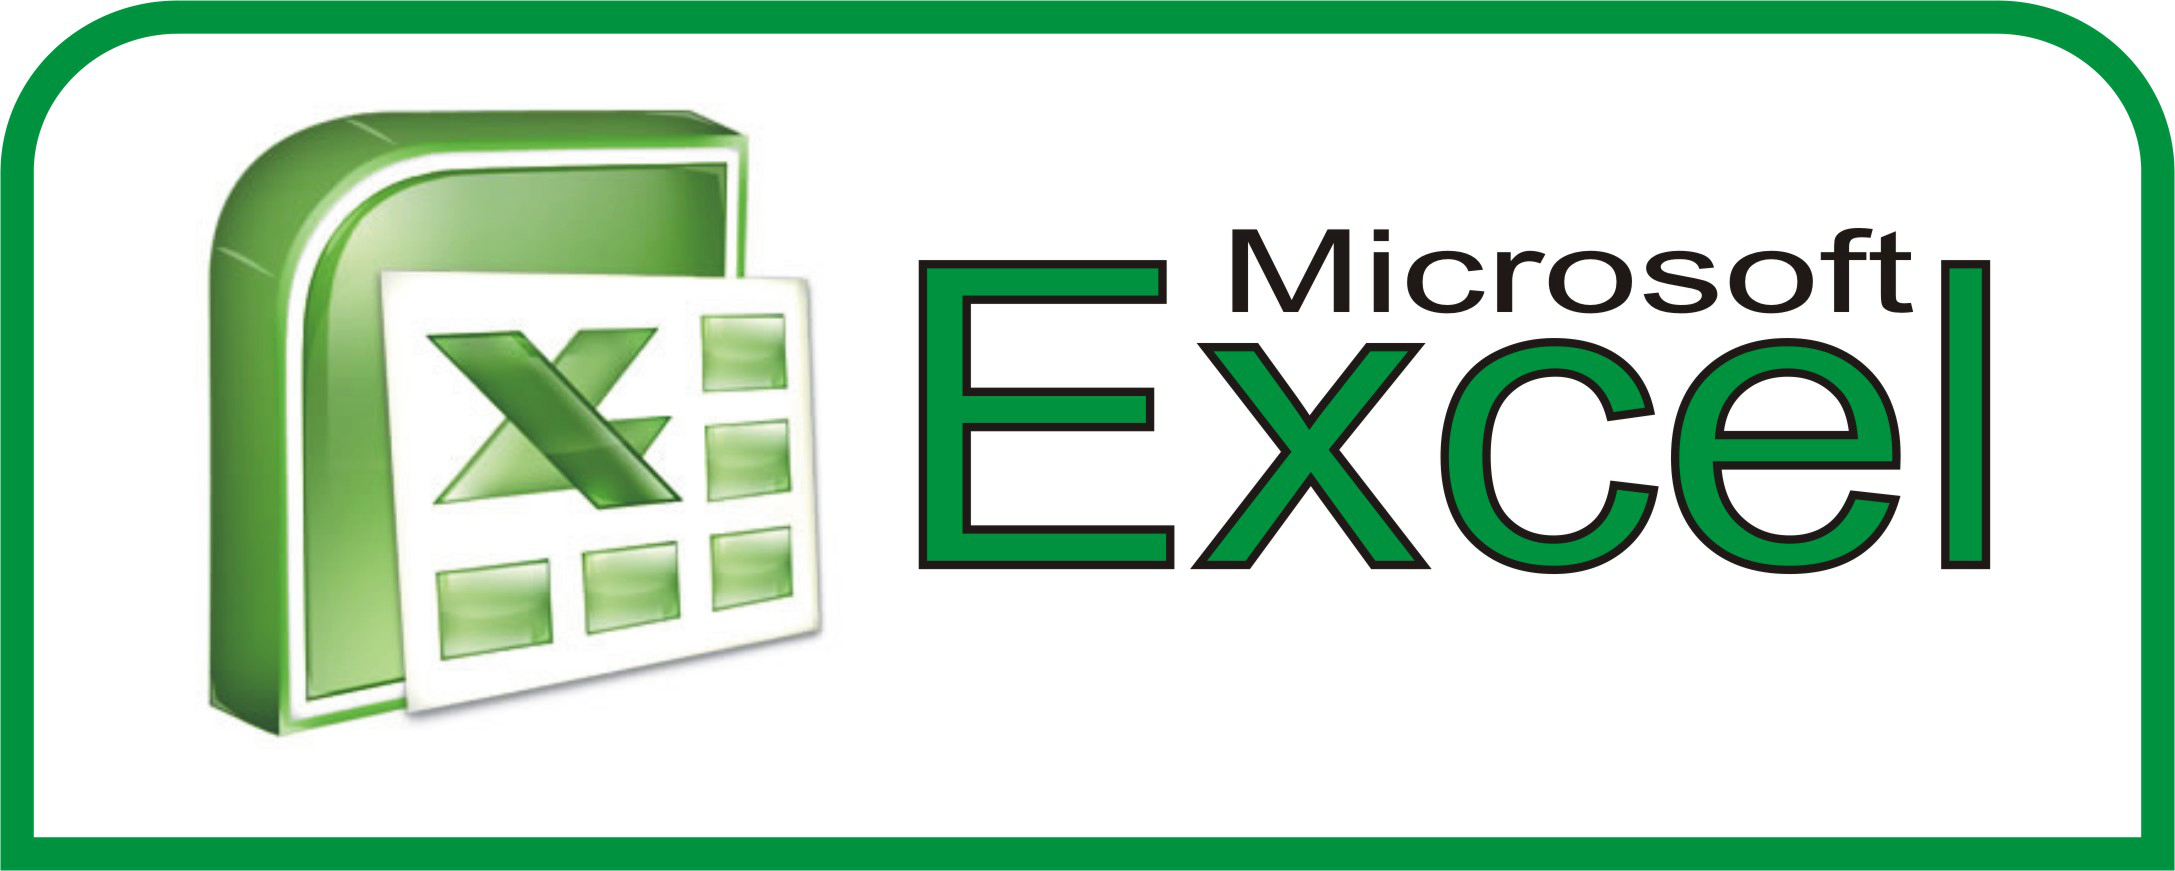 Ediblewildsus  Stunning  Excel Shortcuts You Probably Didnt Know About  Techdissected With Outstanding Excel Macro Send Email Besides Excel Percentage Formulas Furthermore Statistics On Excel With Comely Keyboard Shortcut Excel Also Fv Function In Excel In Addition Excel Merge  Columns And Timesheets In Excel As Well As Excel Add Days Additionally How To Create A Bar Graph On Excel From Techdissectedcom With Ediblewildsus  Outstanding  Excel Shortcuts You Probably Didnt Know About  Techdissected With Comely Excel Macro Send Email Besides Excel Percentage Formulas Furthermore Statistics On Excel And Stunning Keyboard Shortcut Excel Also Fv Function In Excel In Addition Excel Merge  Columns From Techdissectedcom